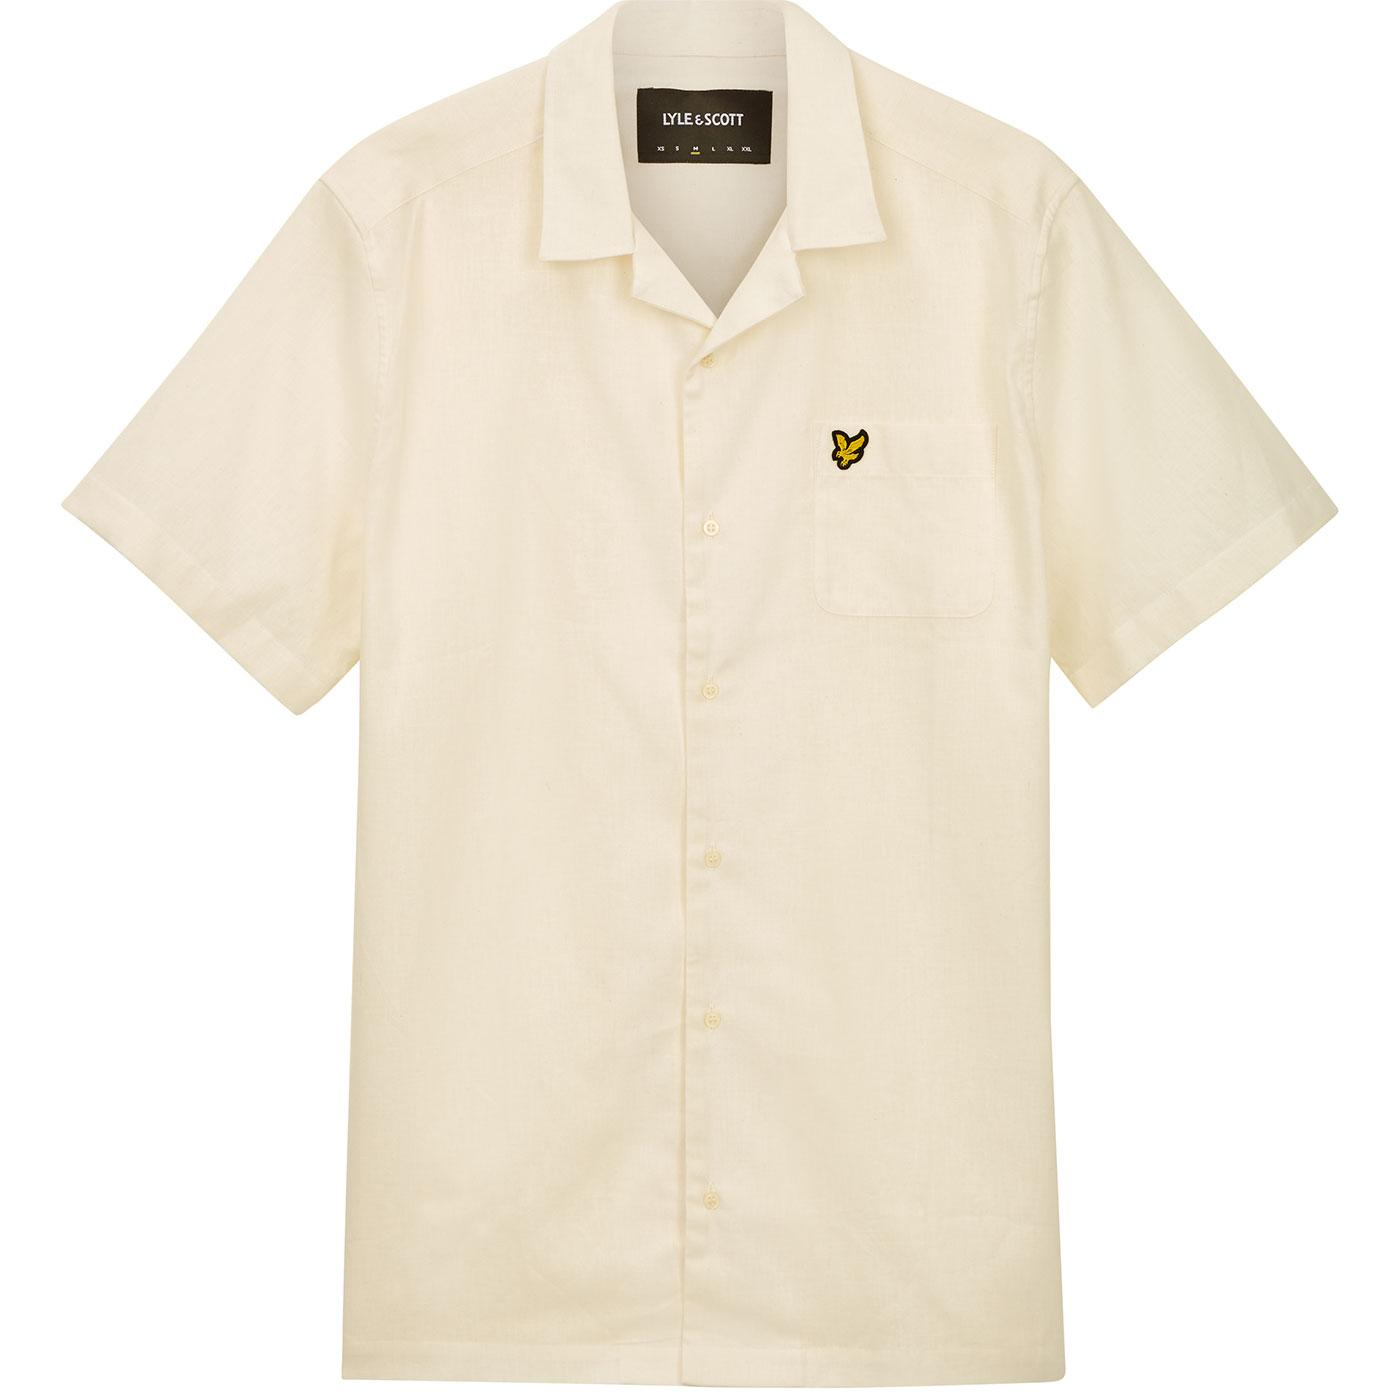 LYLE & SCOTT Retro 1970s Linen Resort Shirt (SW)